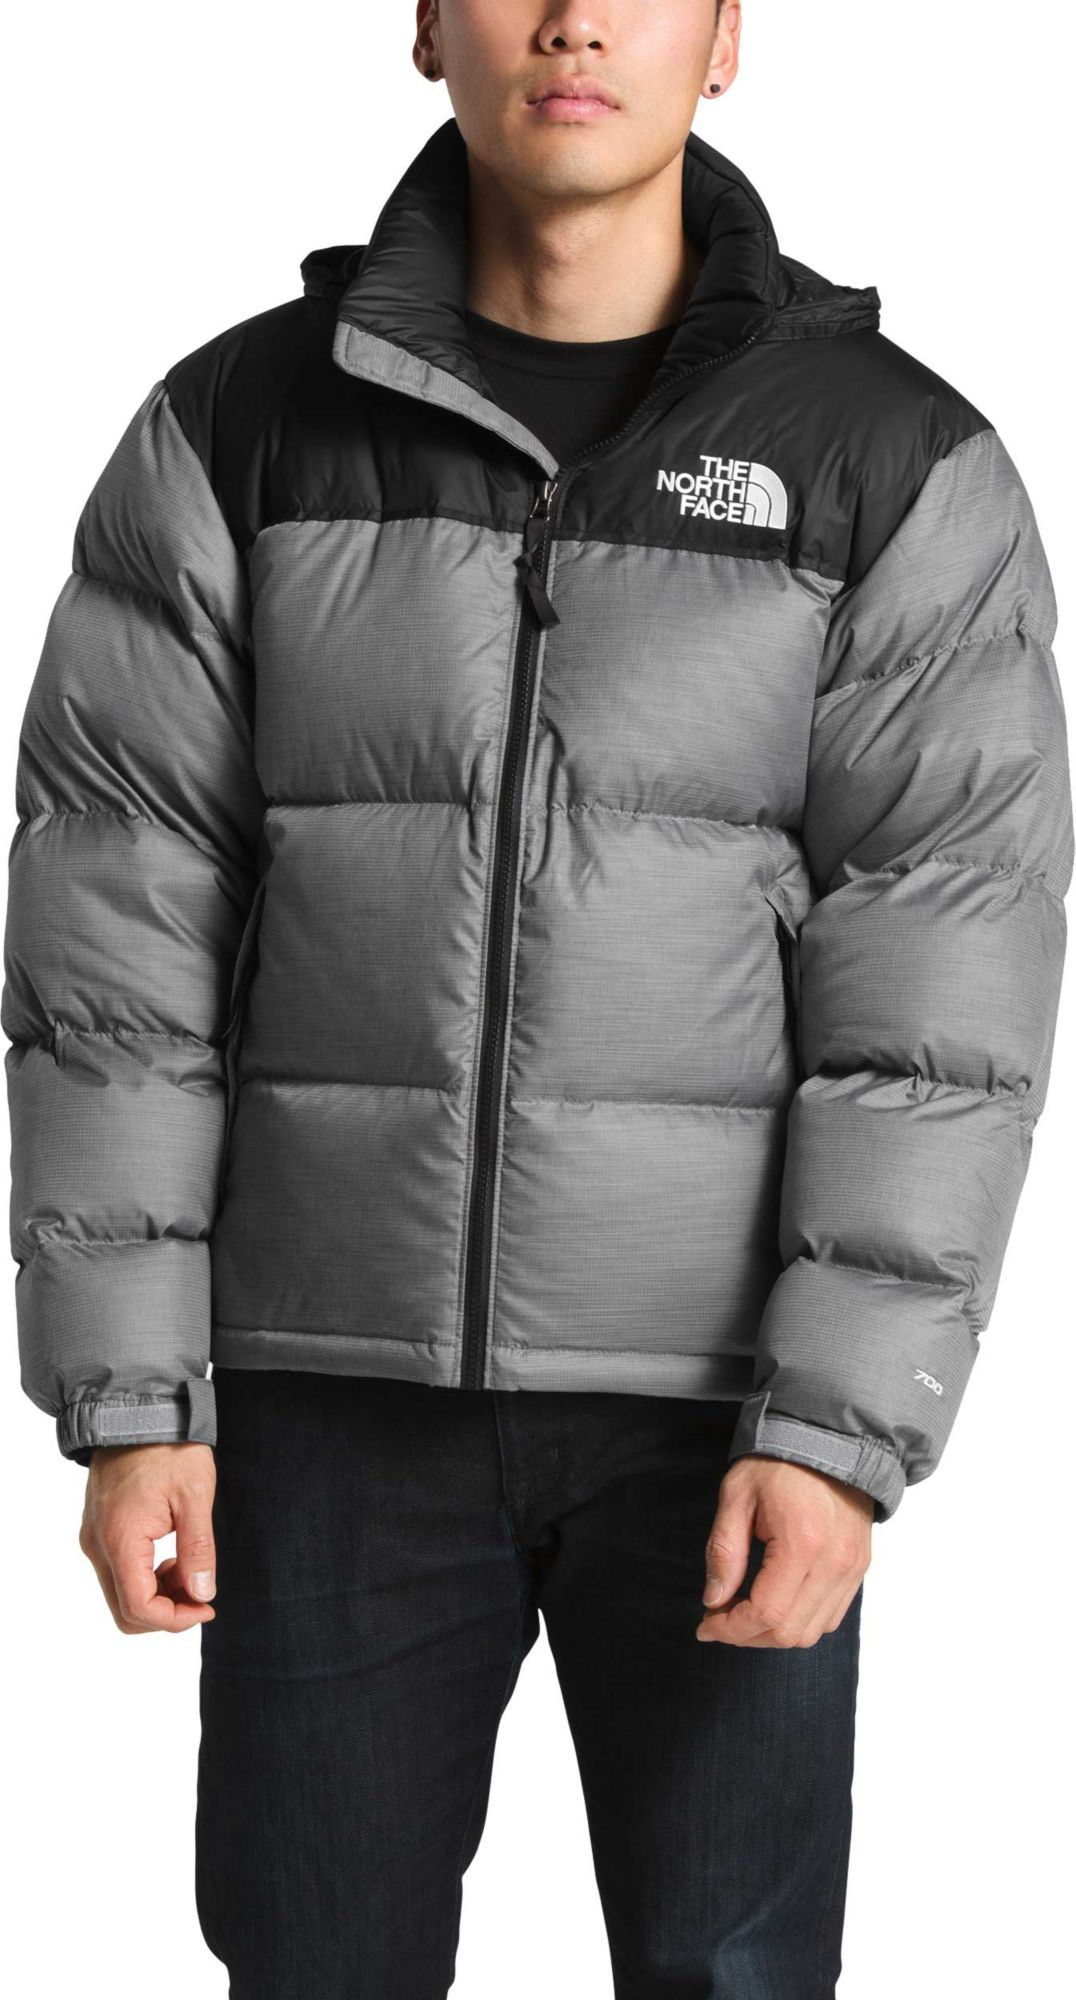 26609c938 The North Face Men's 1996 Retro Nuptse Jacket in 2019 | Products ...